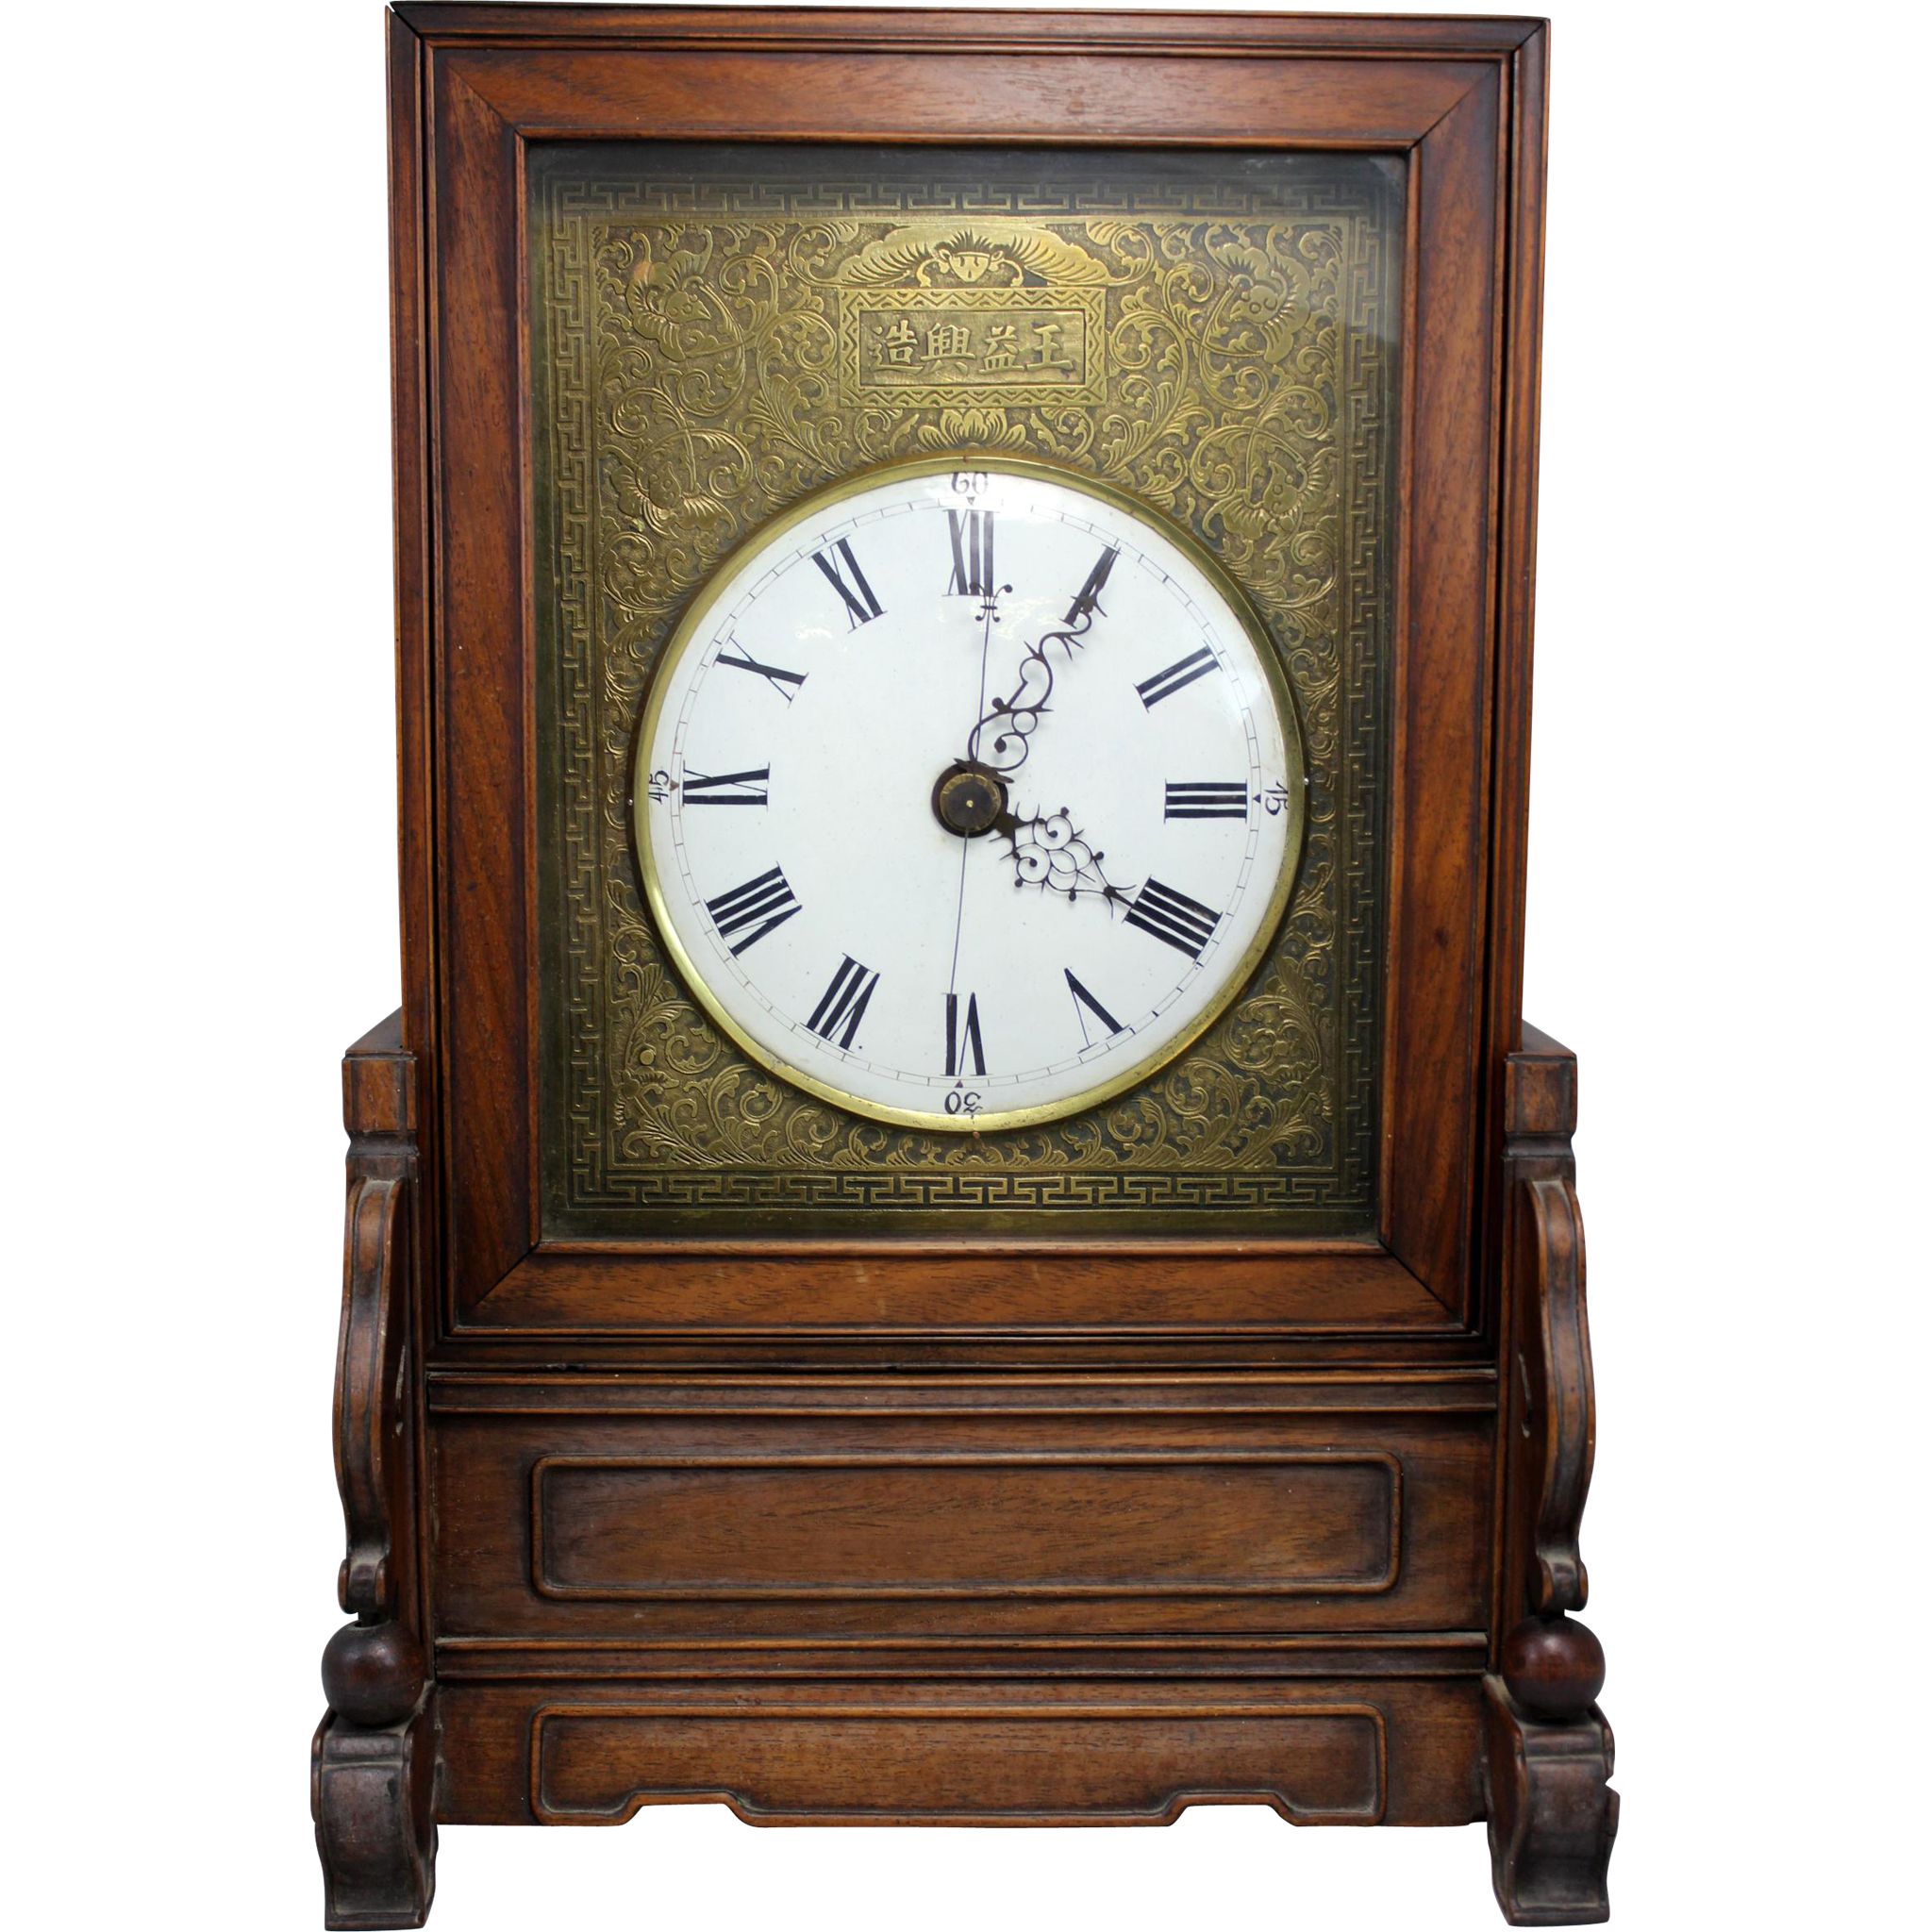 18th / 19th c Chinese Bracket Clock with Grand Sonnerie Movement